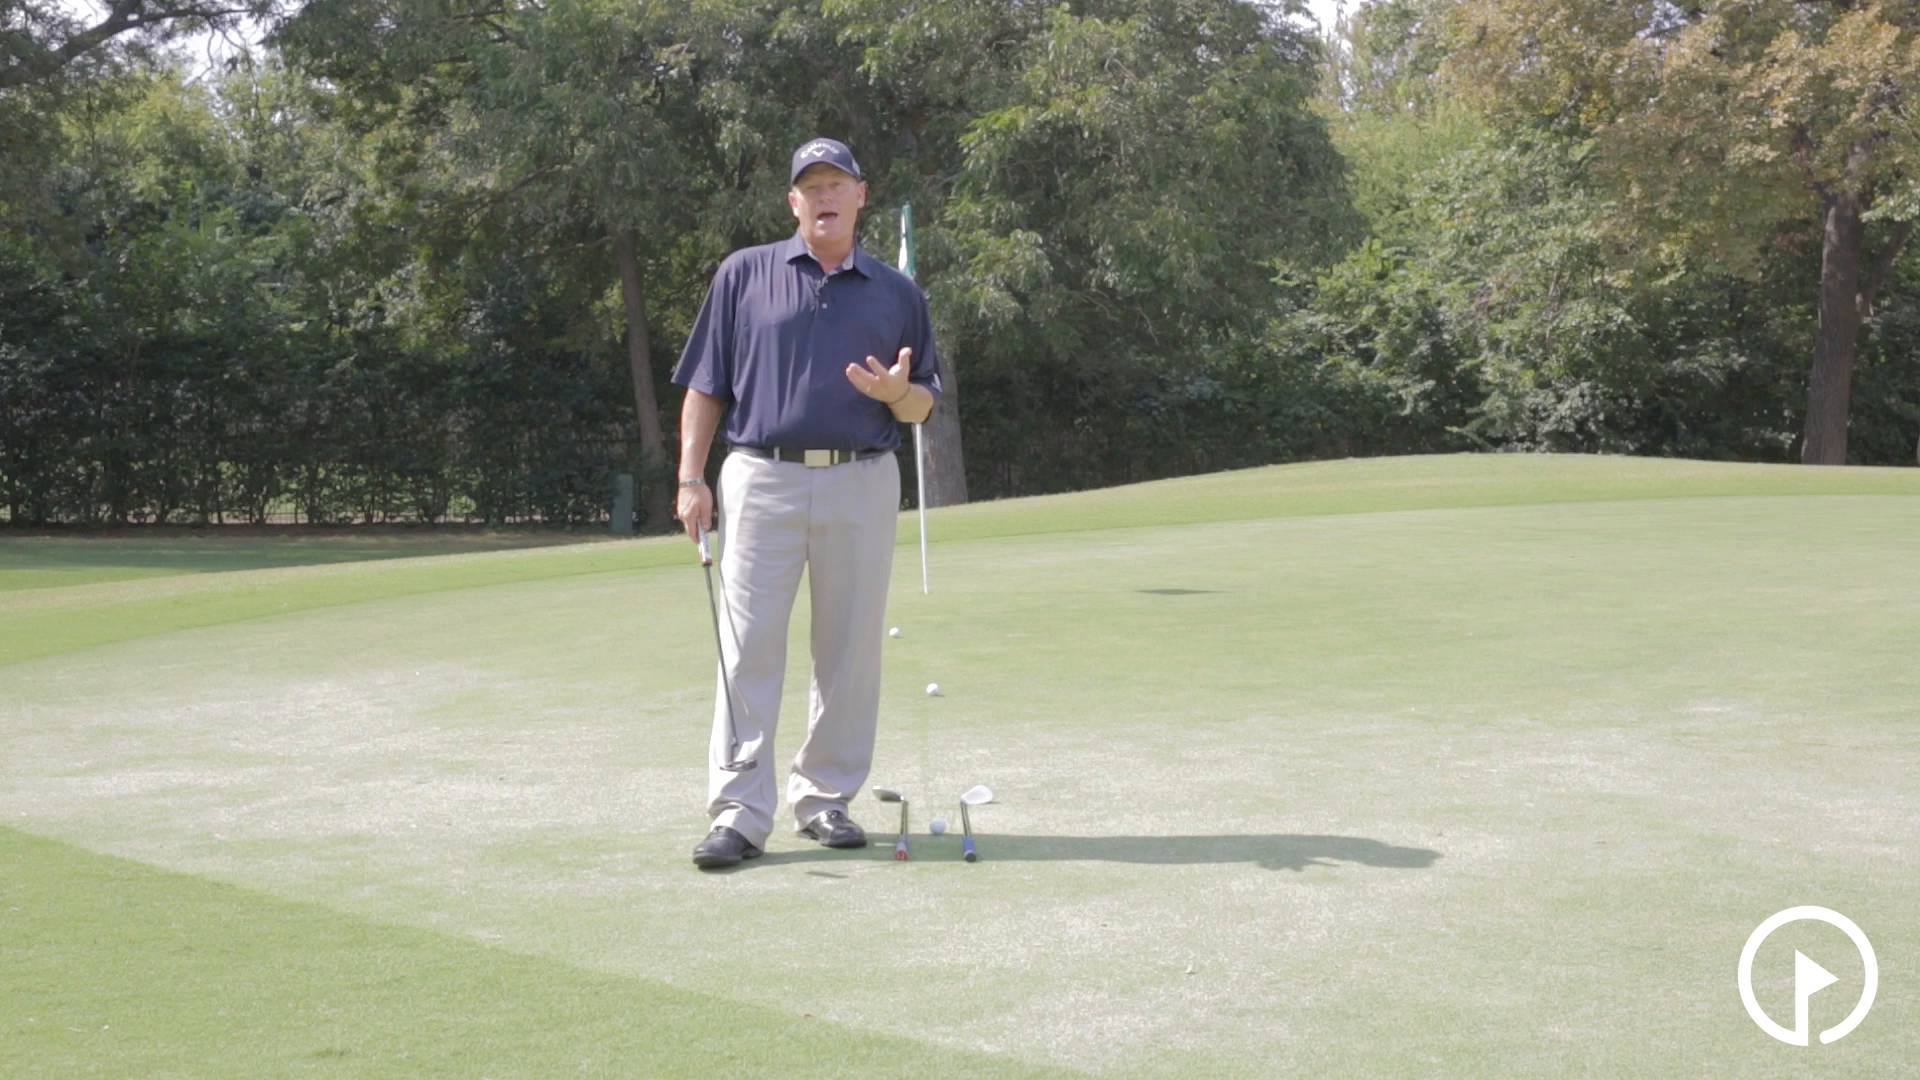 Proper Path for A Good Putting Stroke